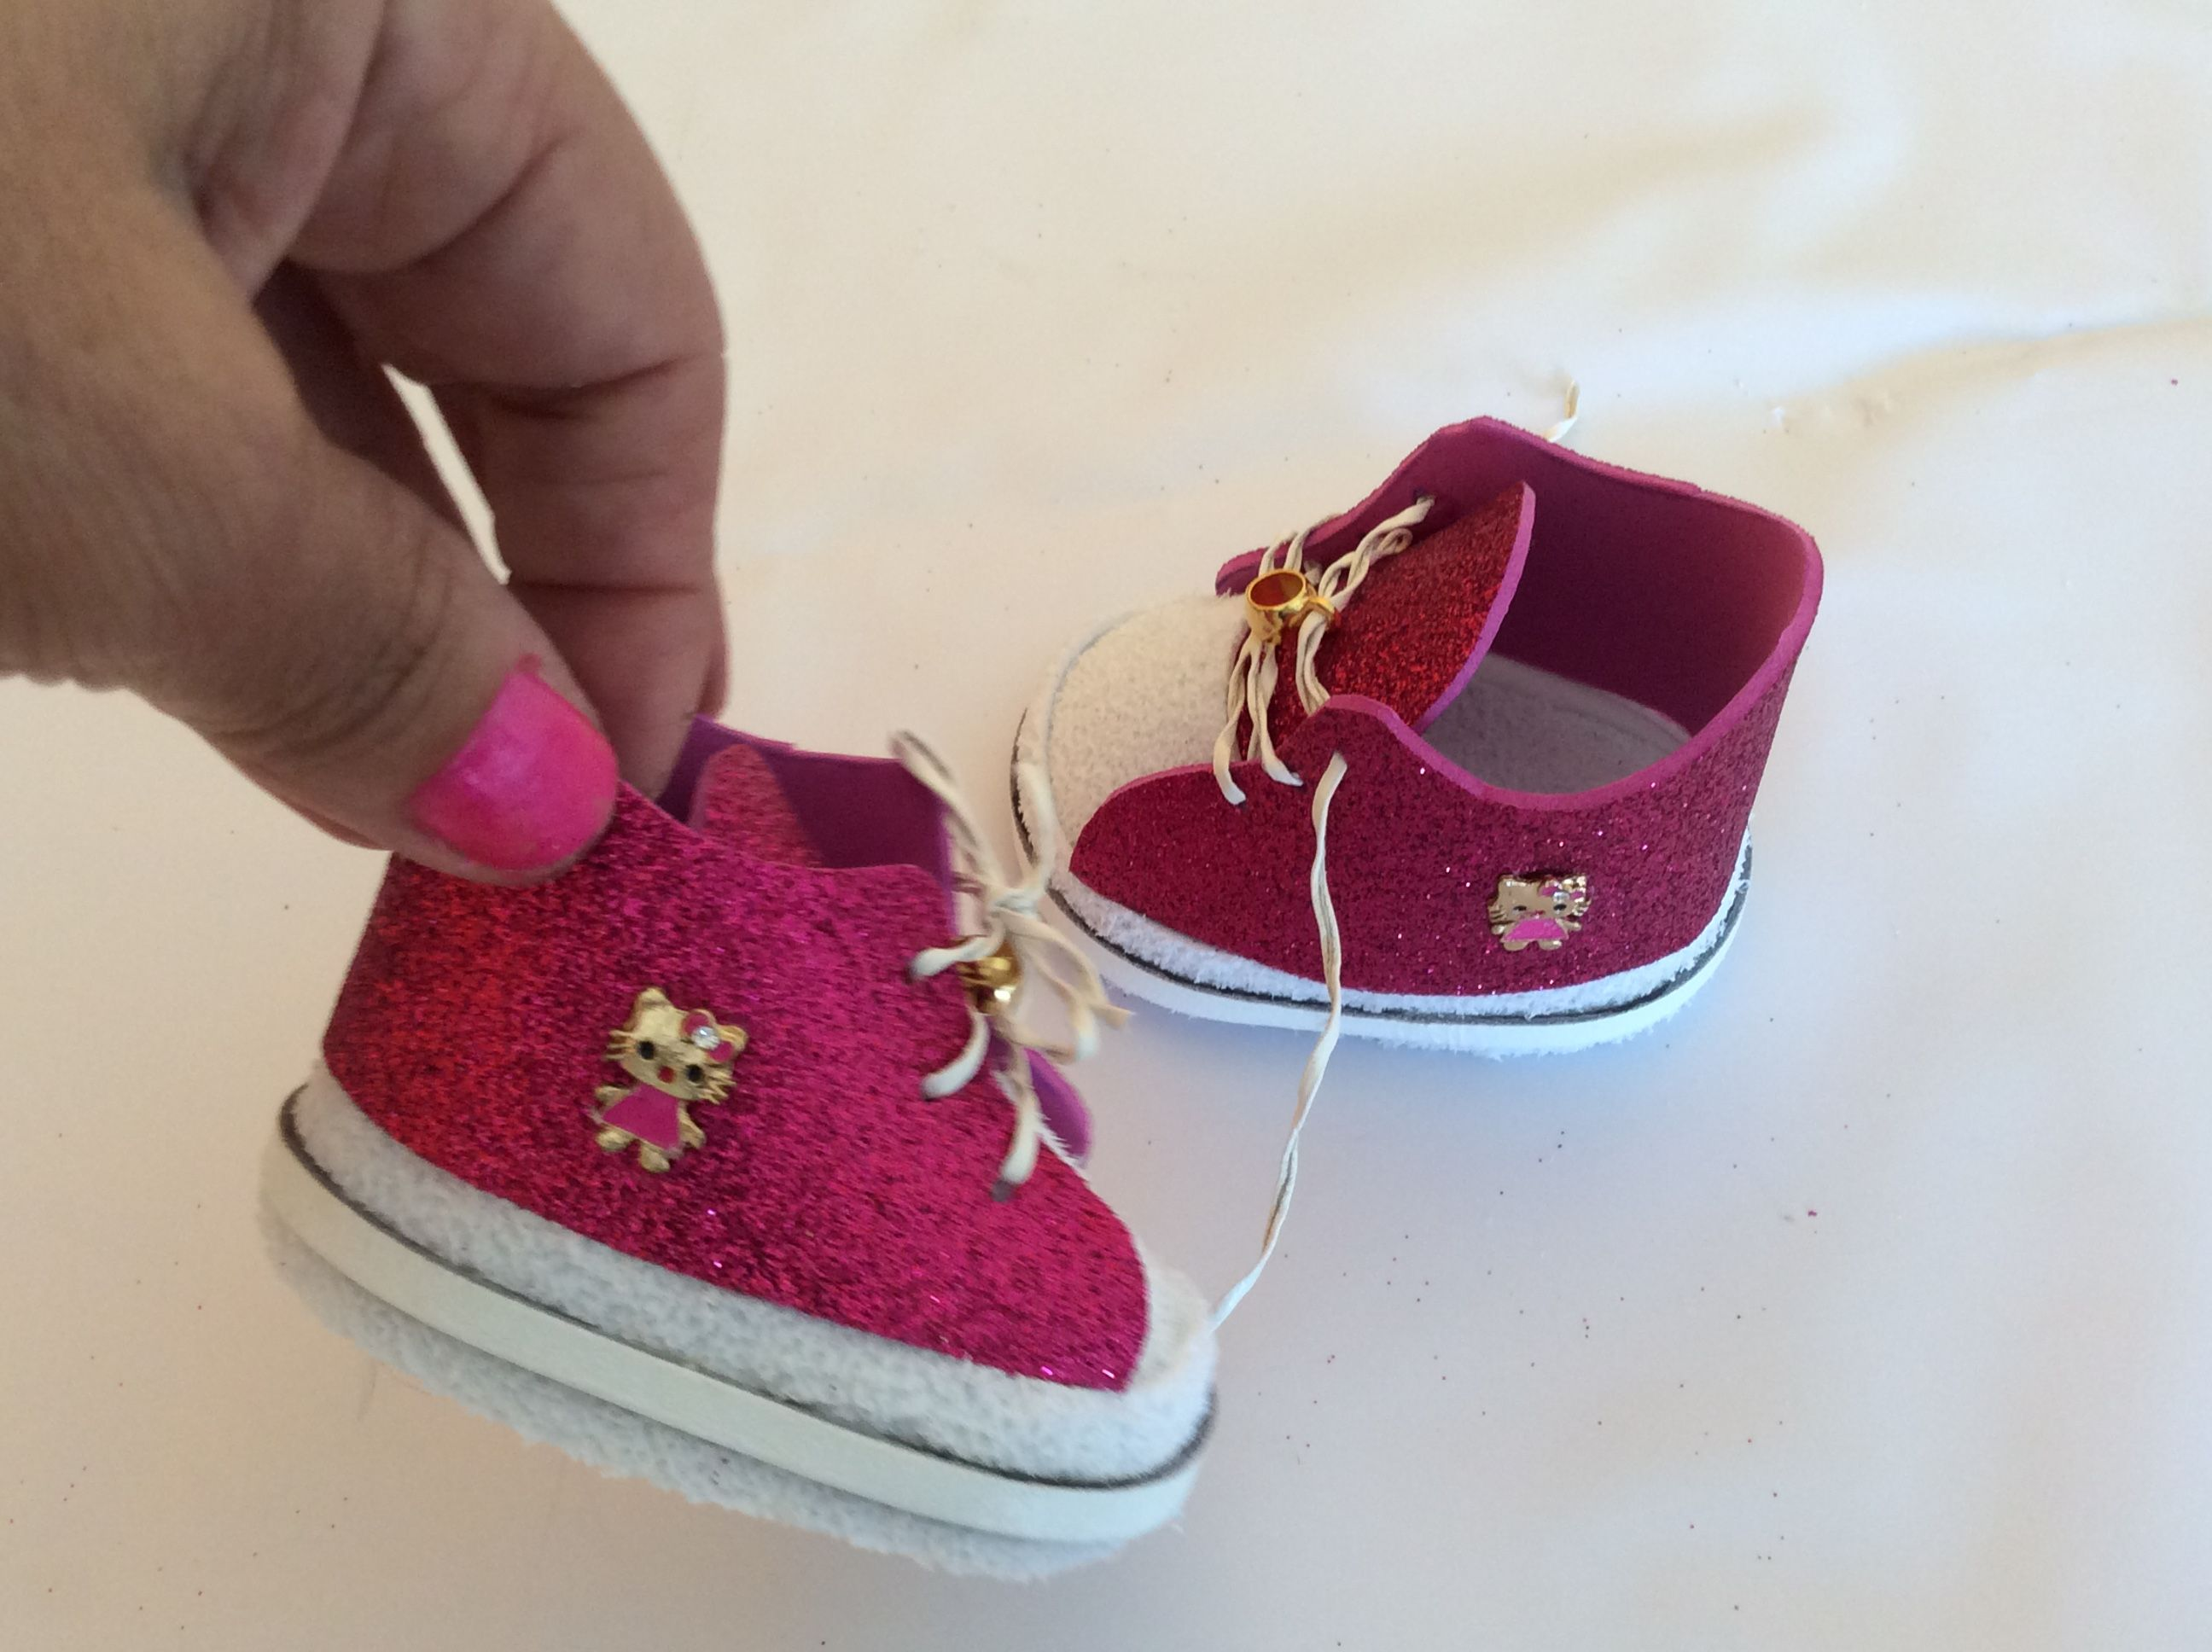 Pin by Risoleta on TŠNIS HELLO KITTY BABY ALIVE Diy